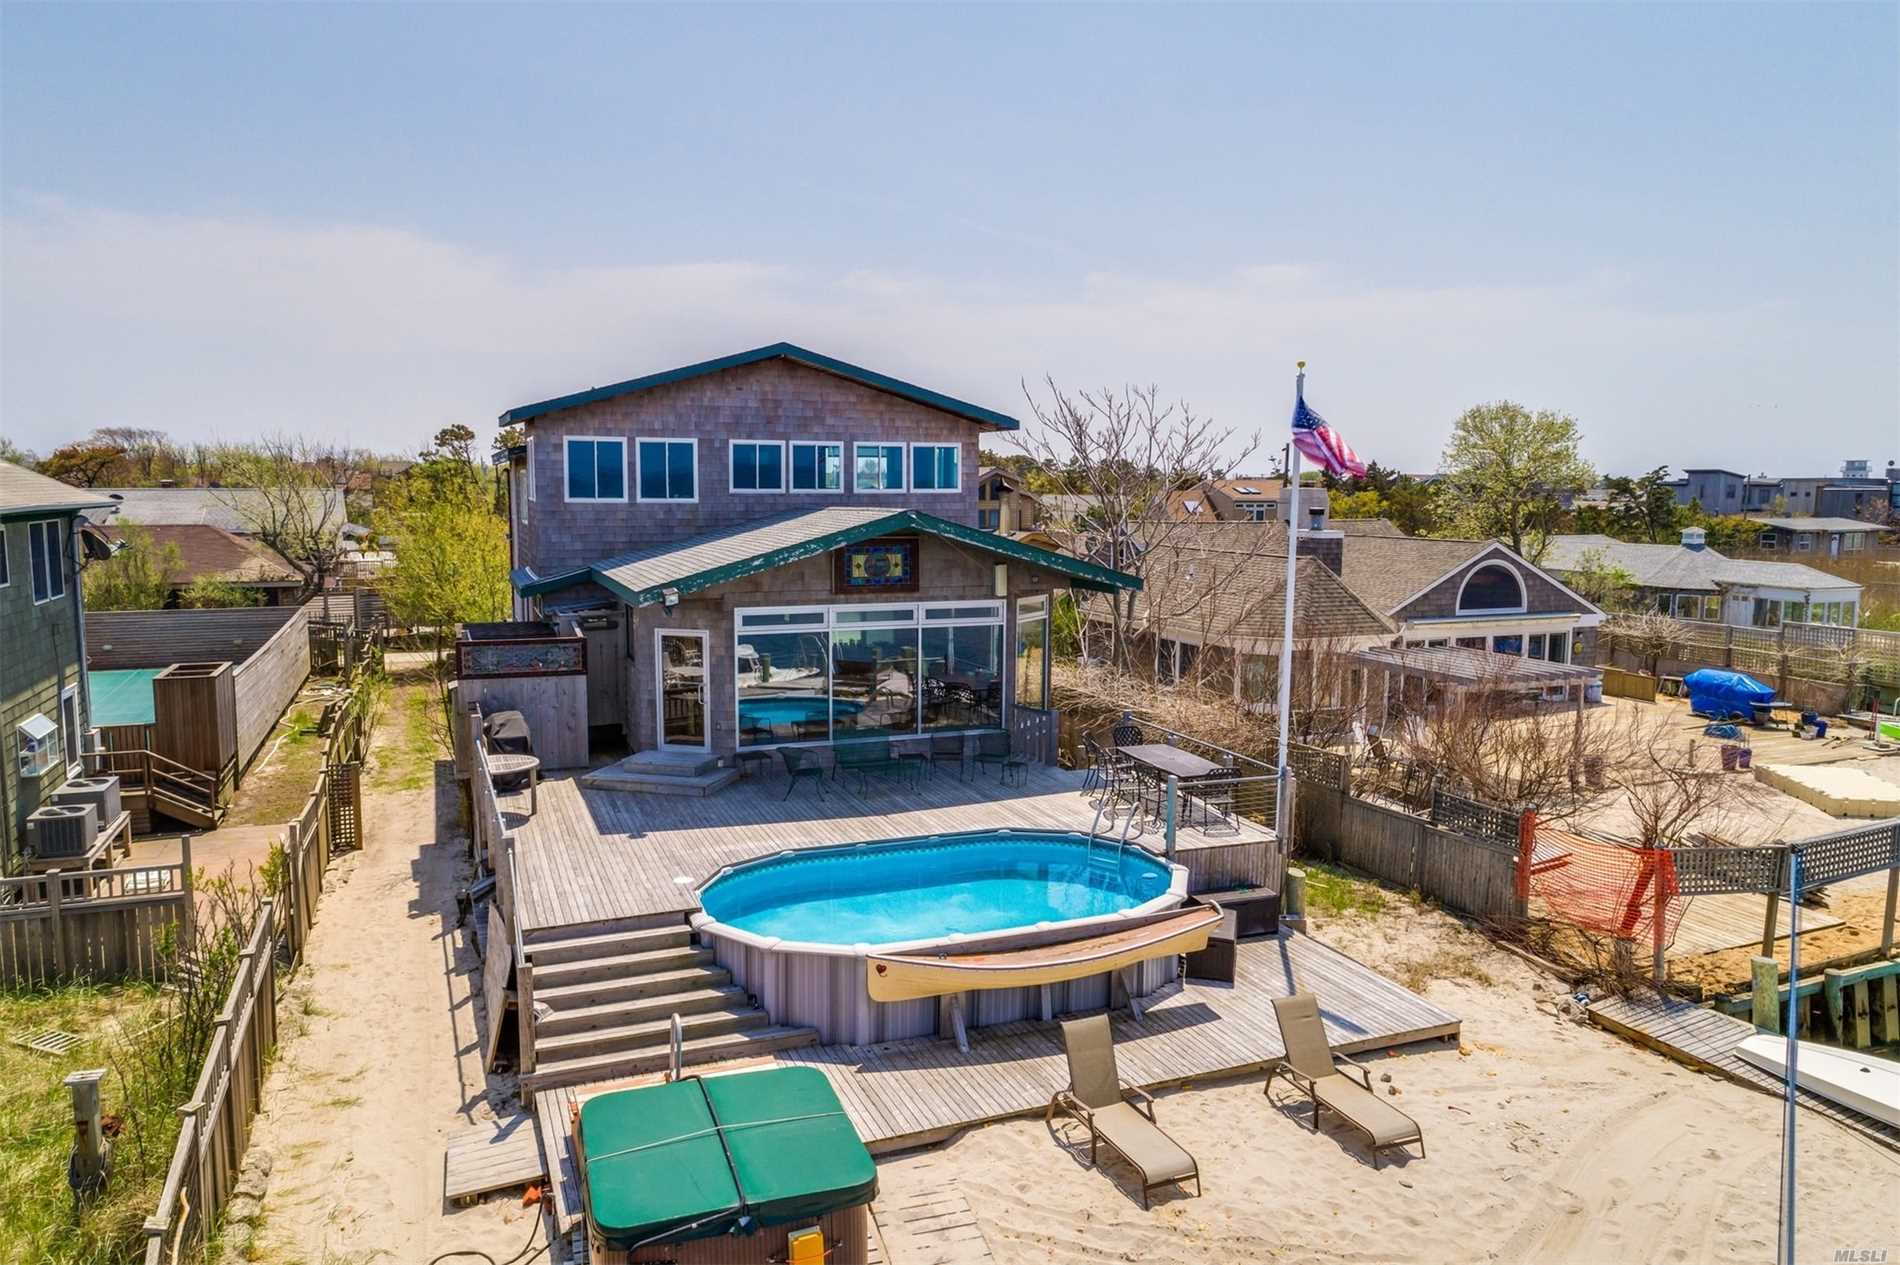 325 Bay Walk - Ocean Beach, New York